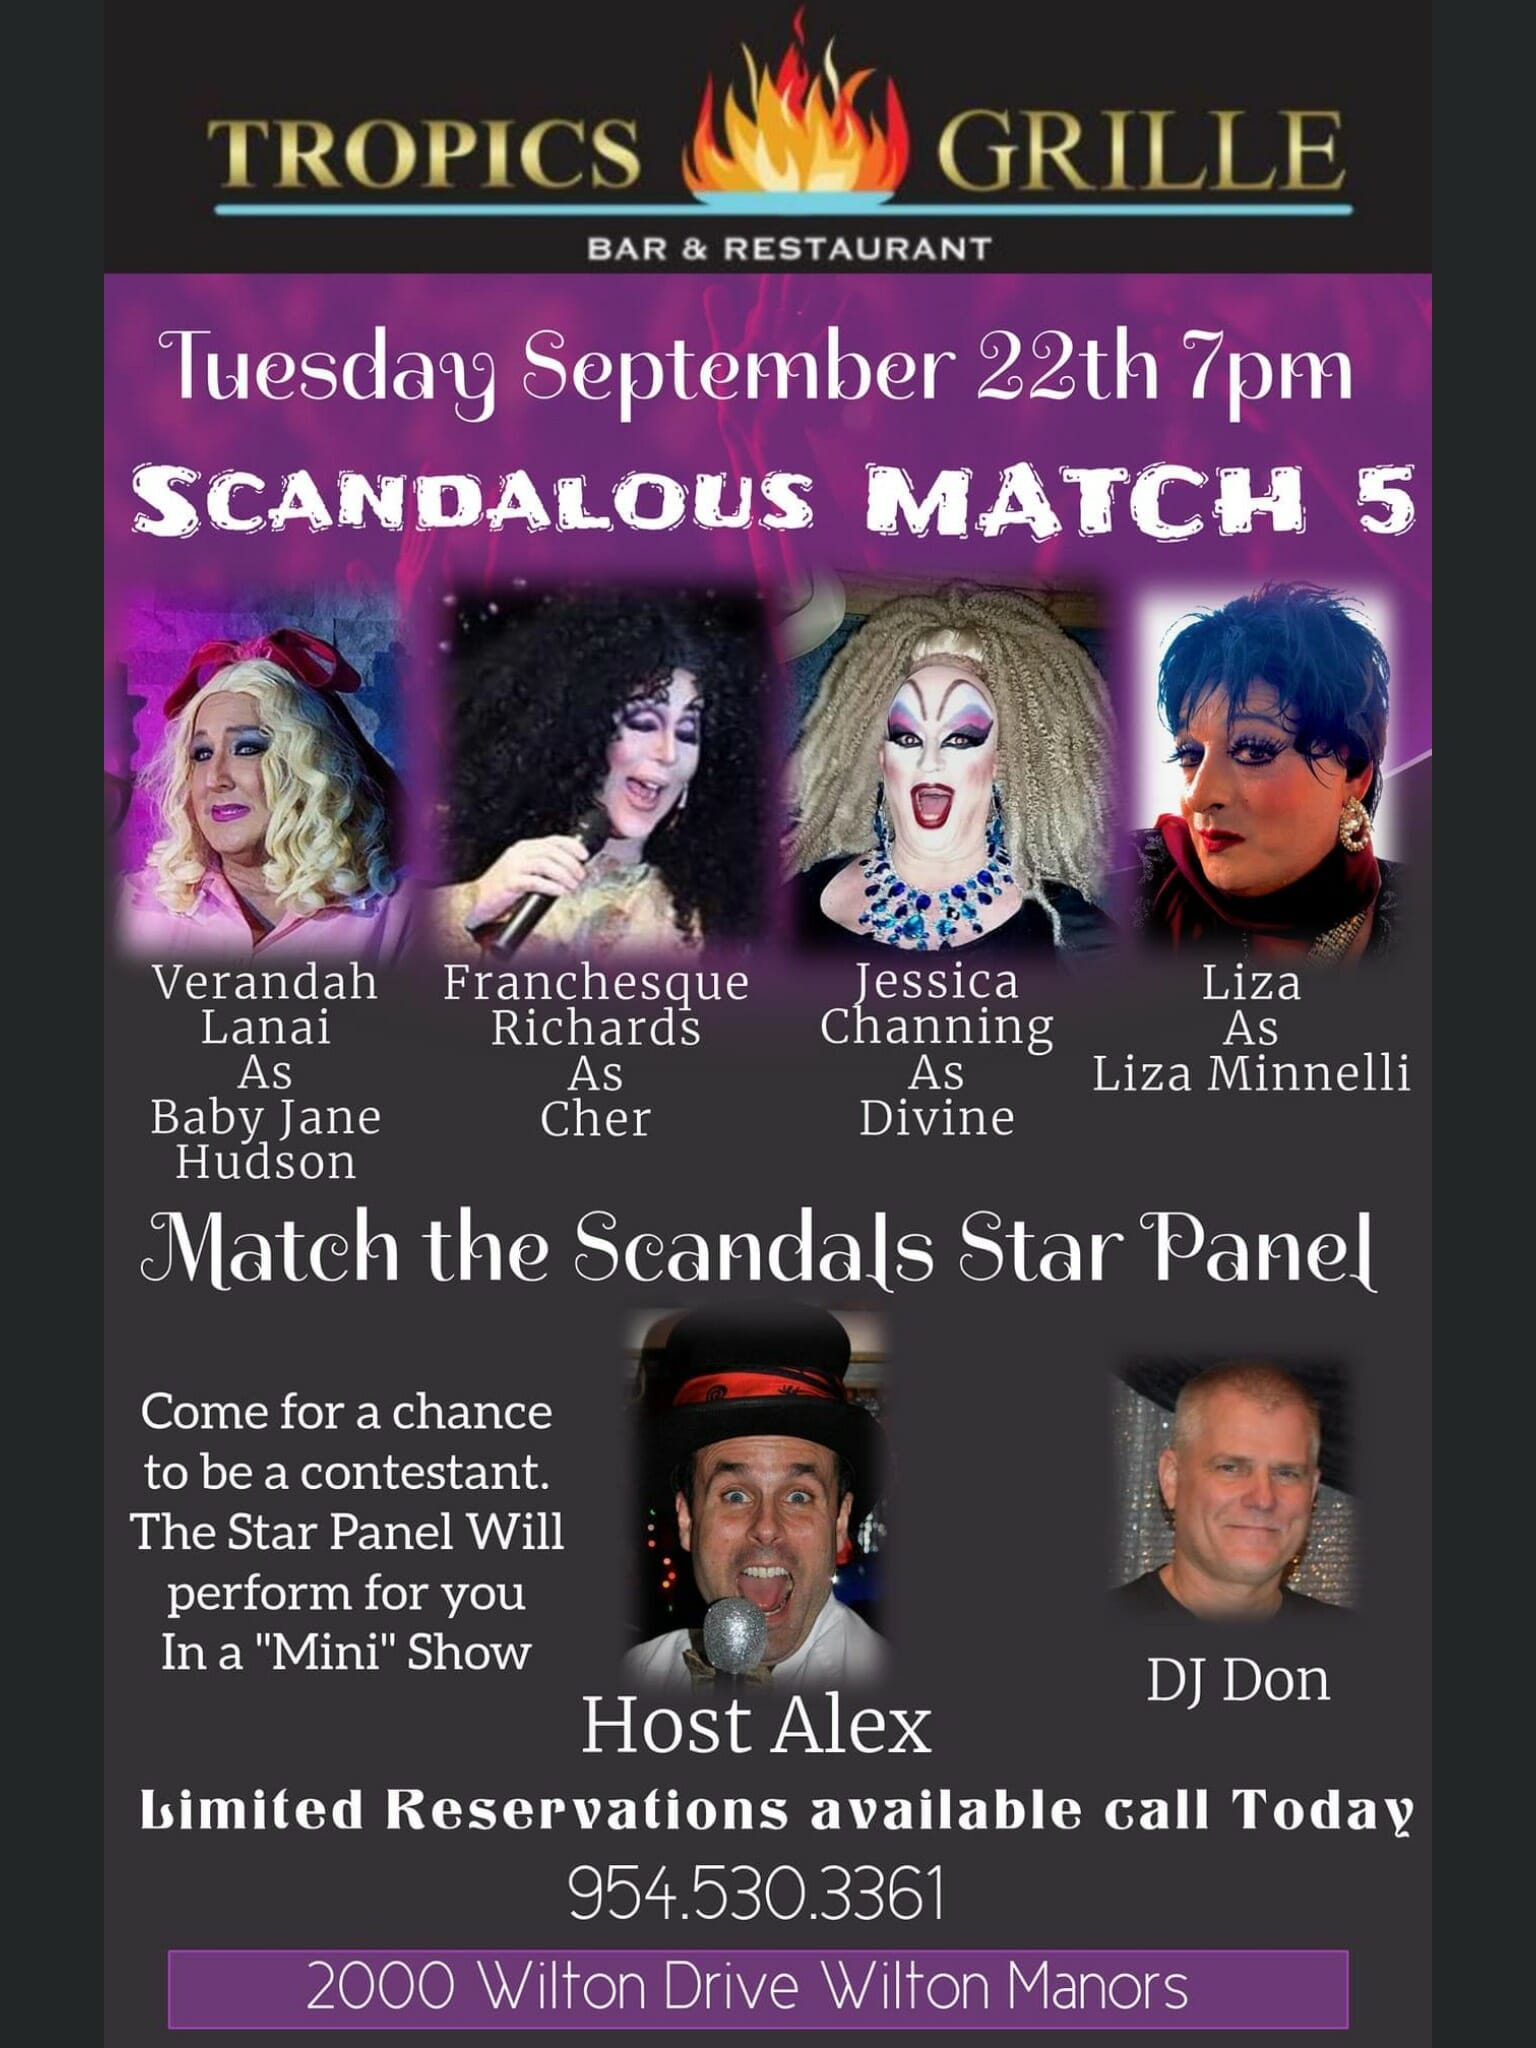 Scandalous Match 5!